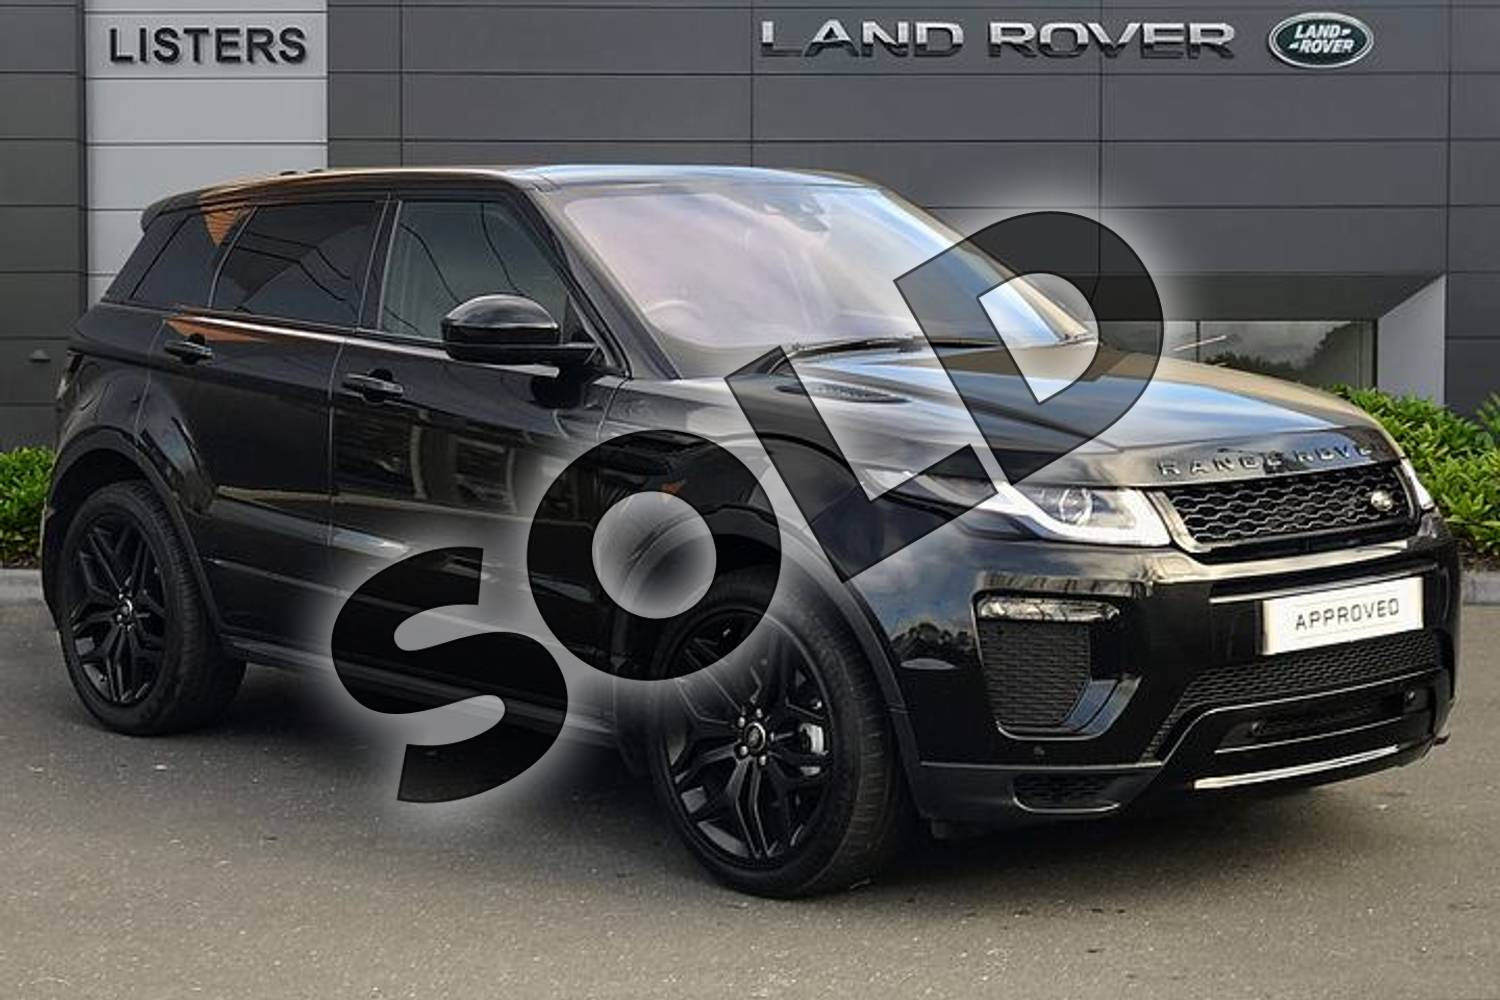 2018 Range Rover Evoque Diesel Hatchback Diesel 2.0 TD4 HSE Dynamic 5dr Auto in Santorini Black at Listers Land Rover Droitwich